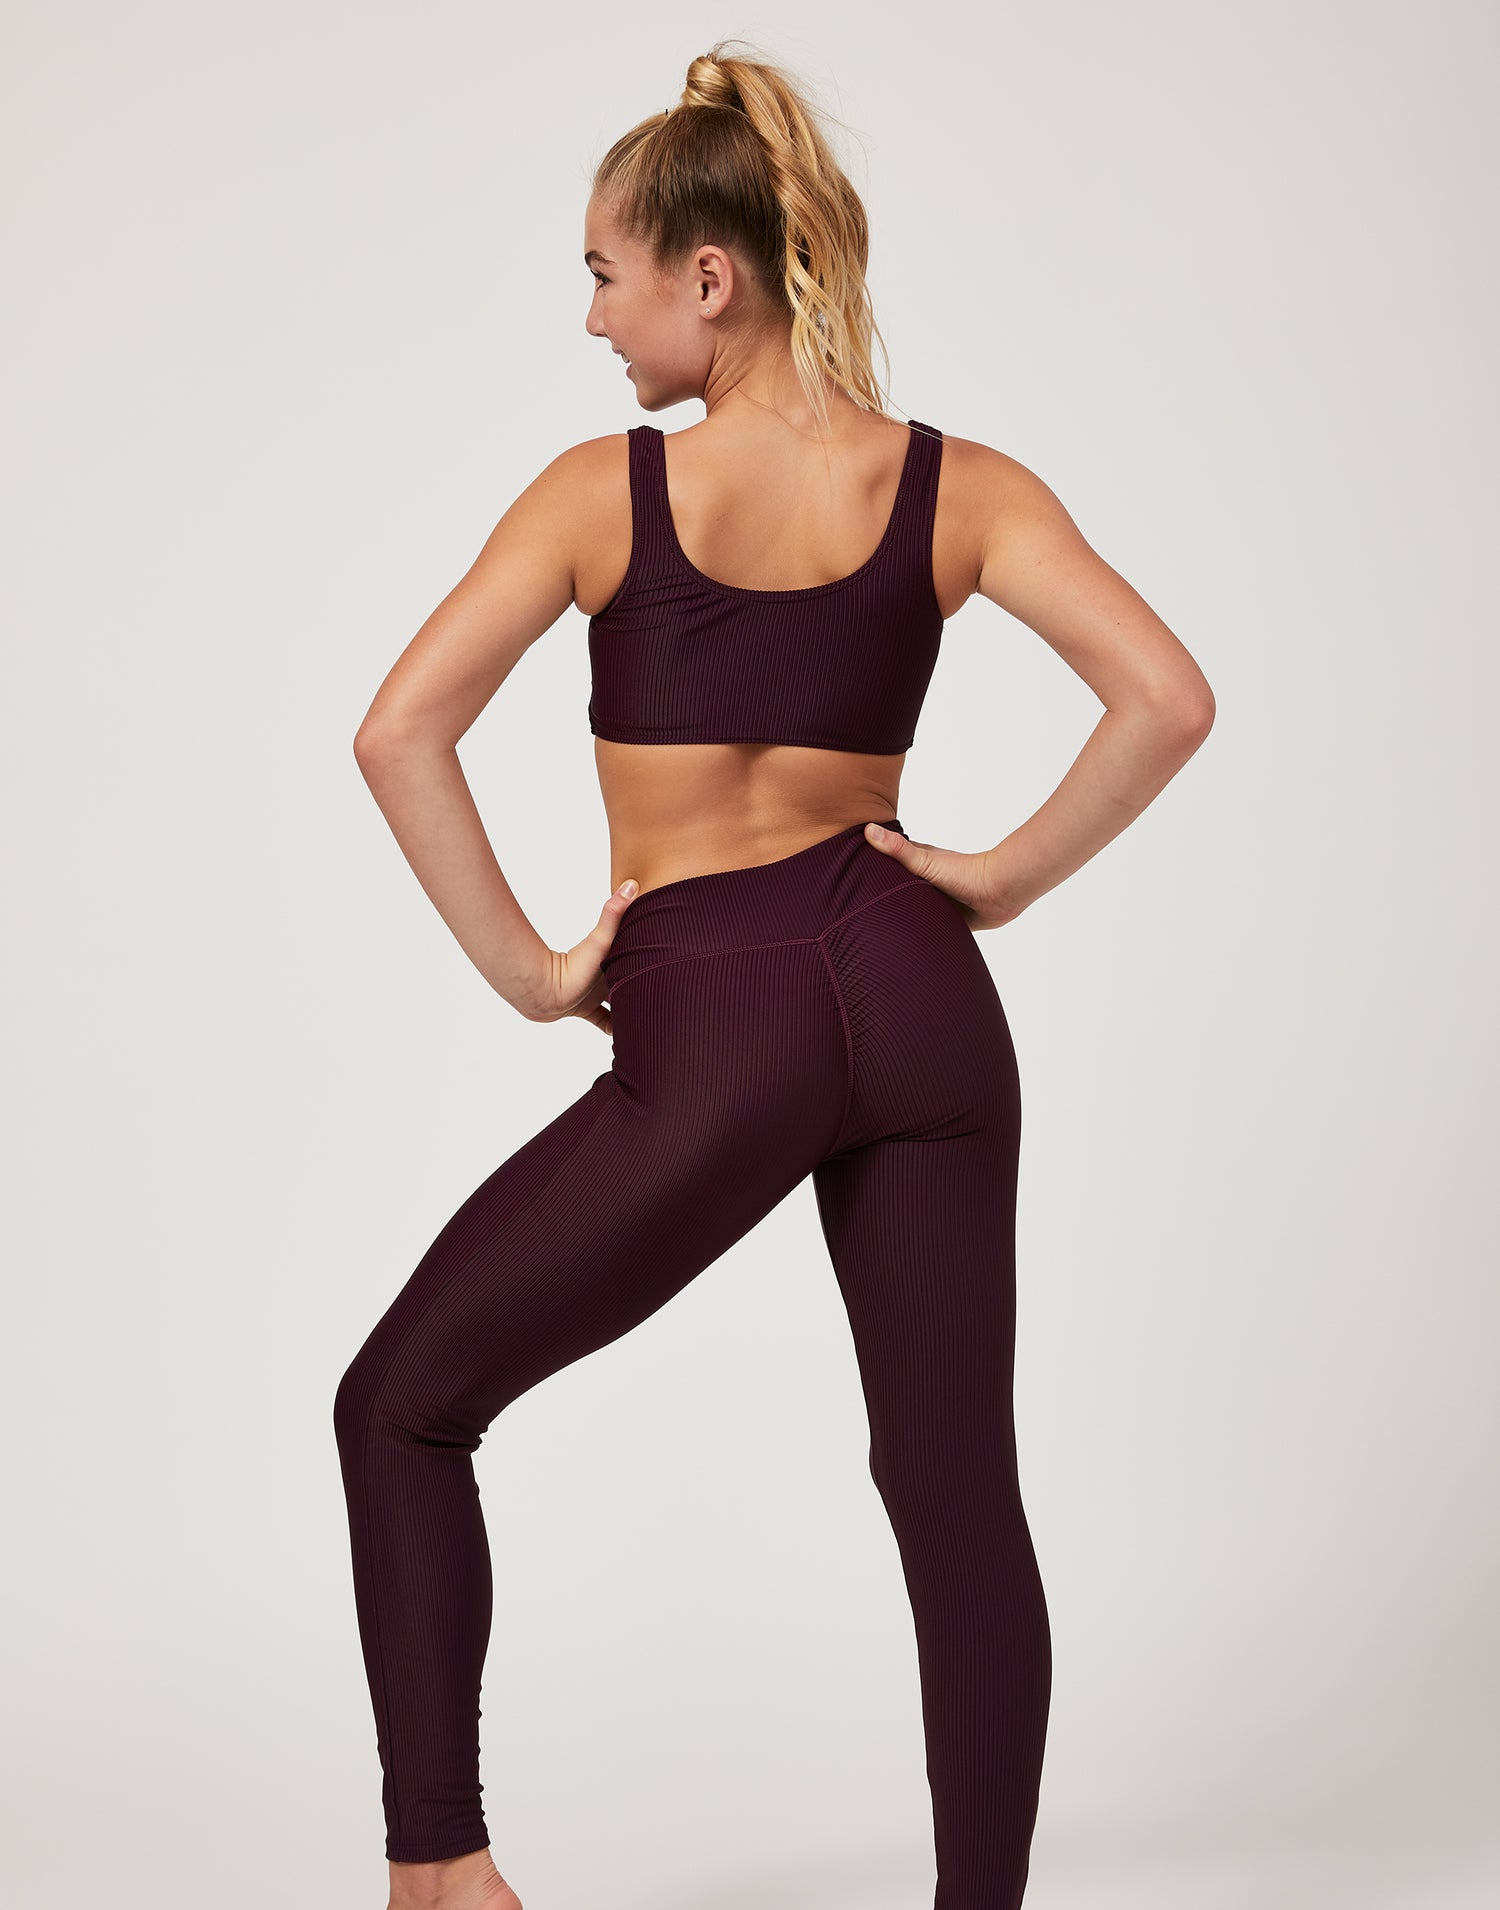 Child London Legging in Eggplant Rib - back view